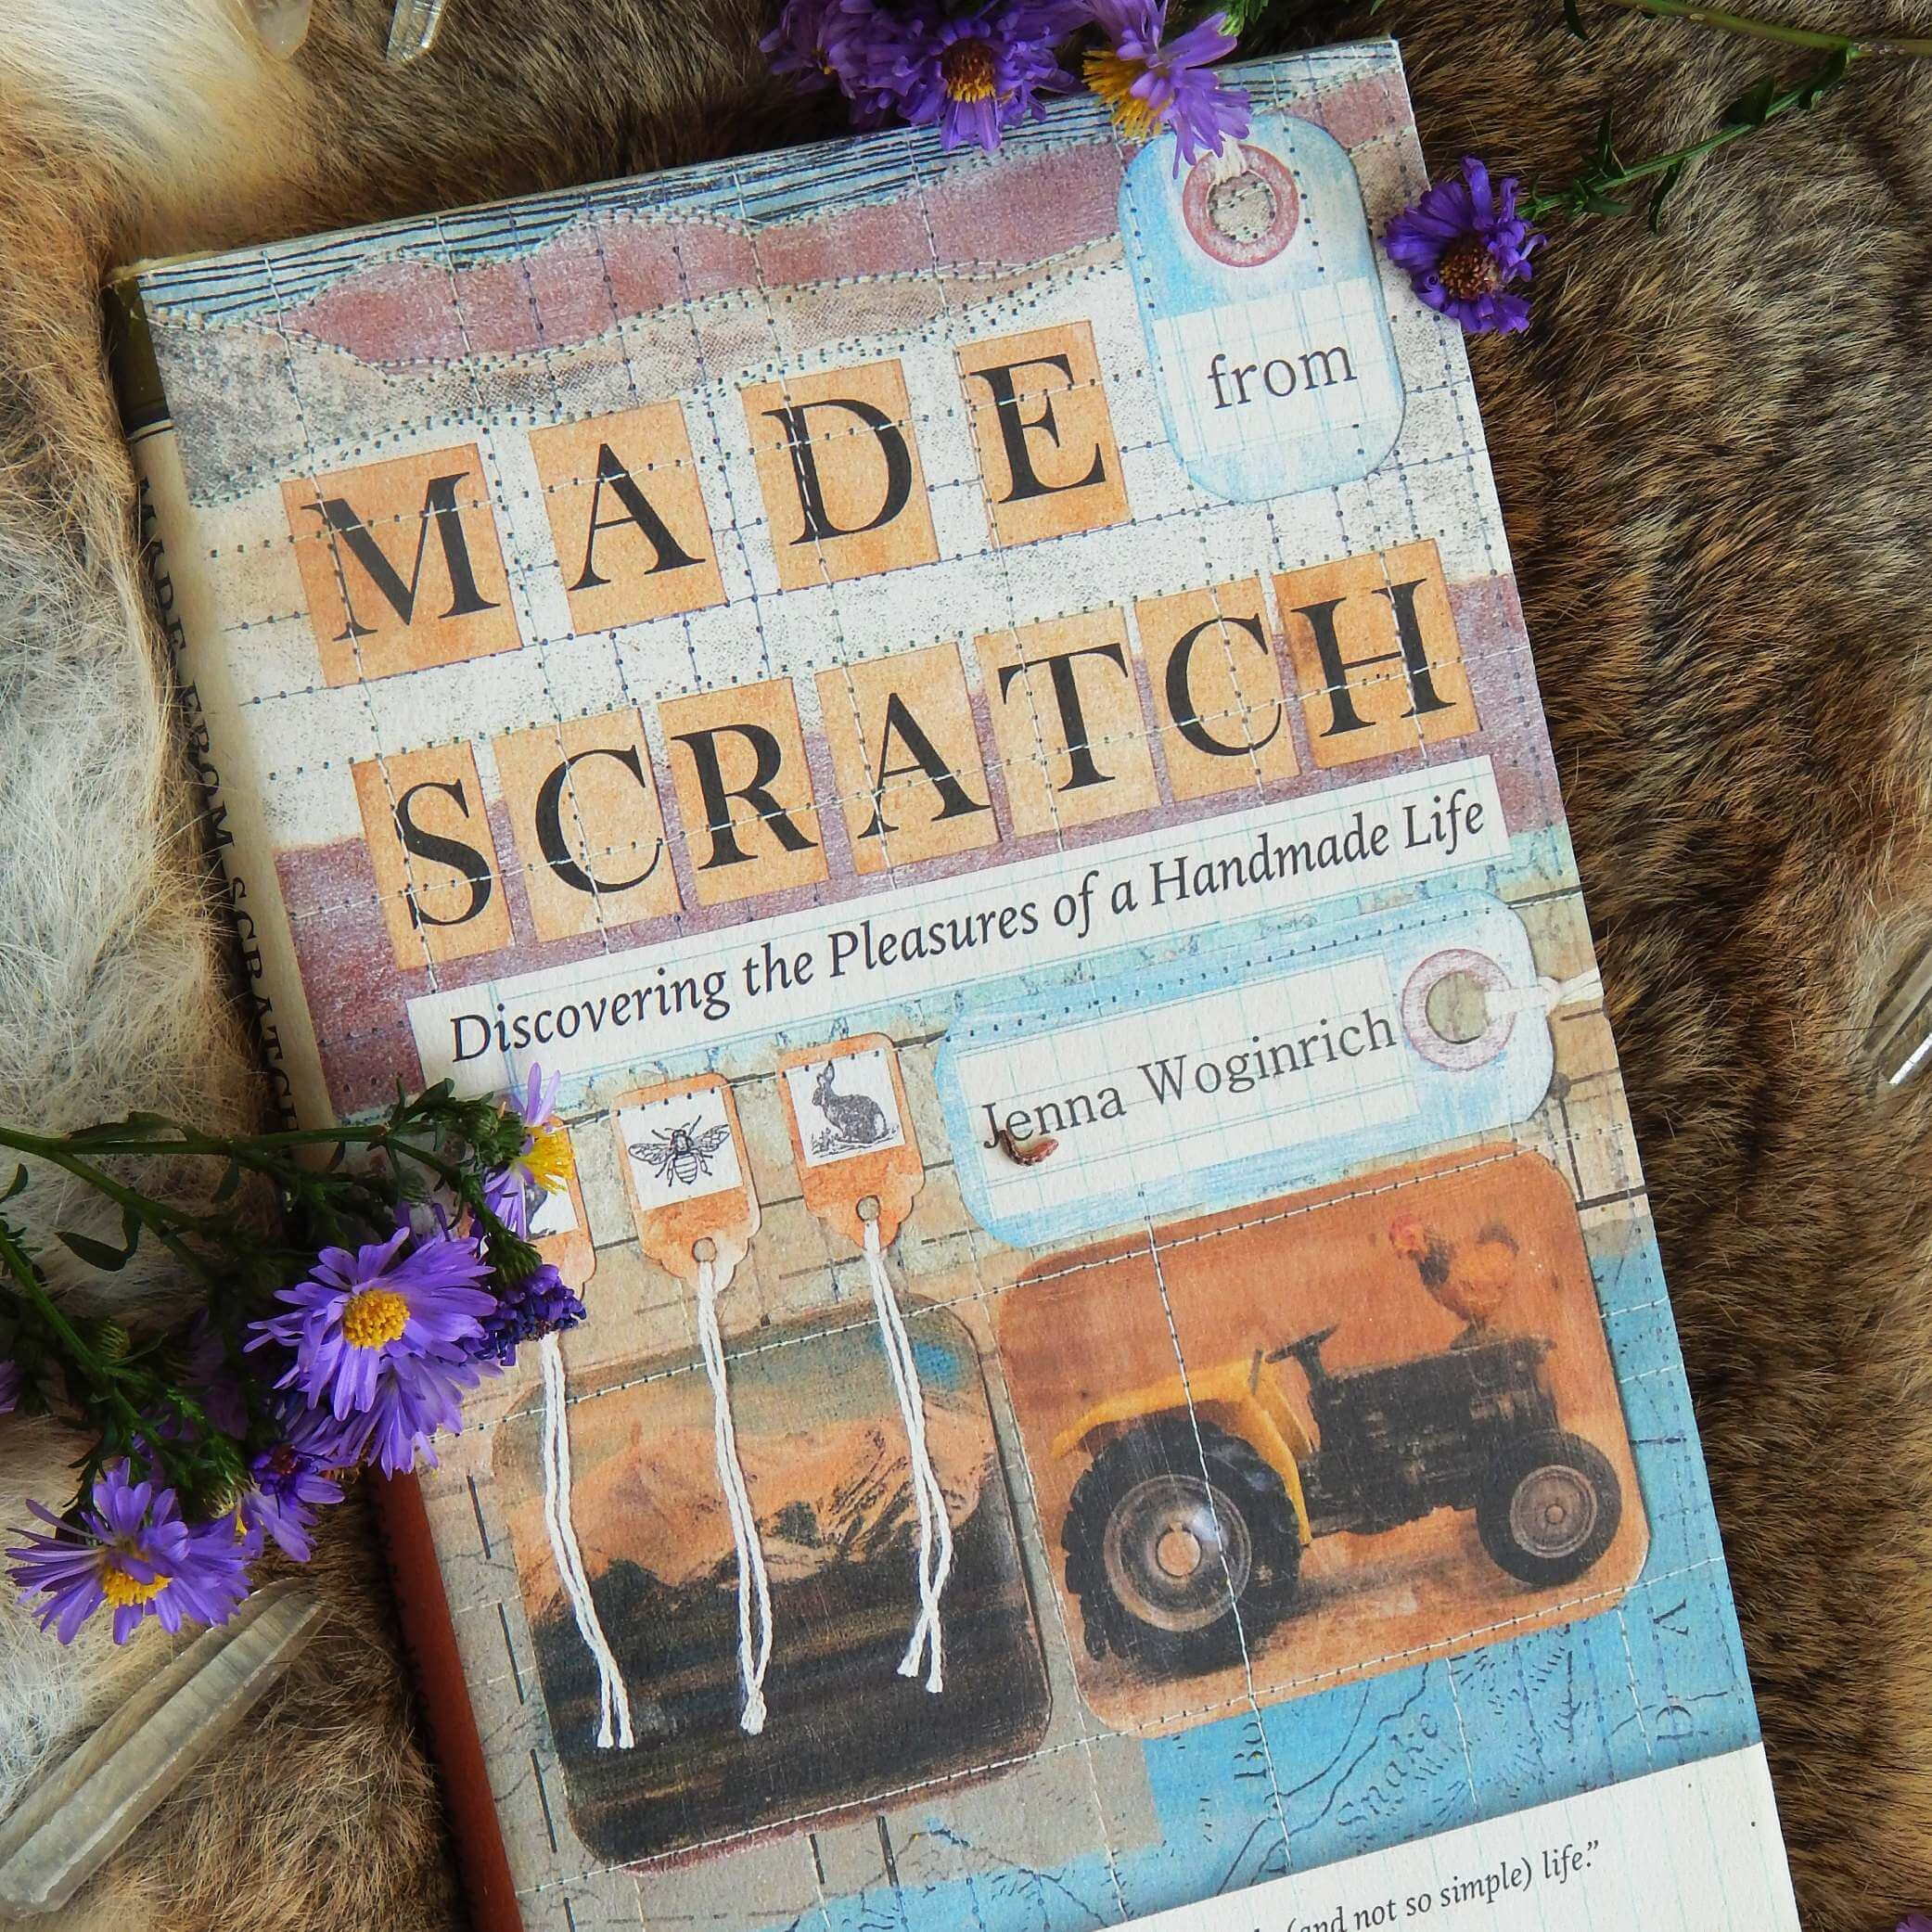 Book review: Made from Scratch by Jenna Woginrich